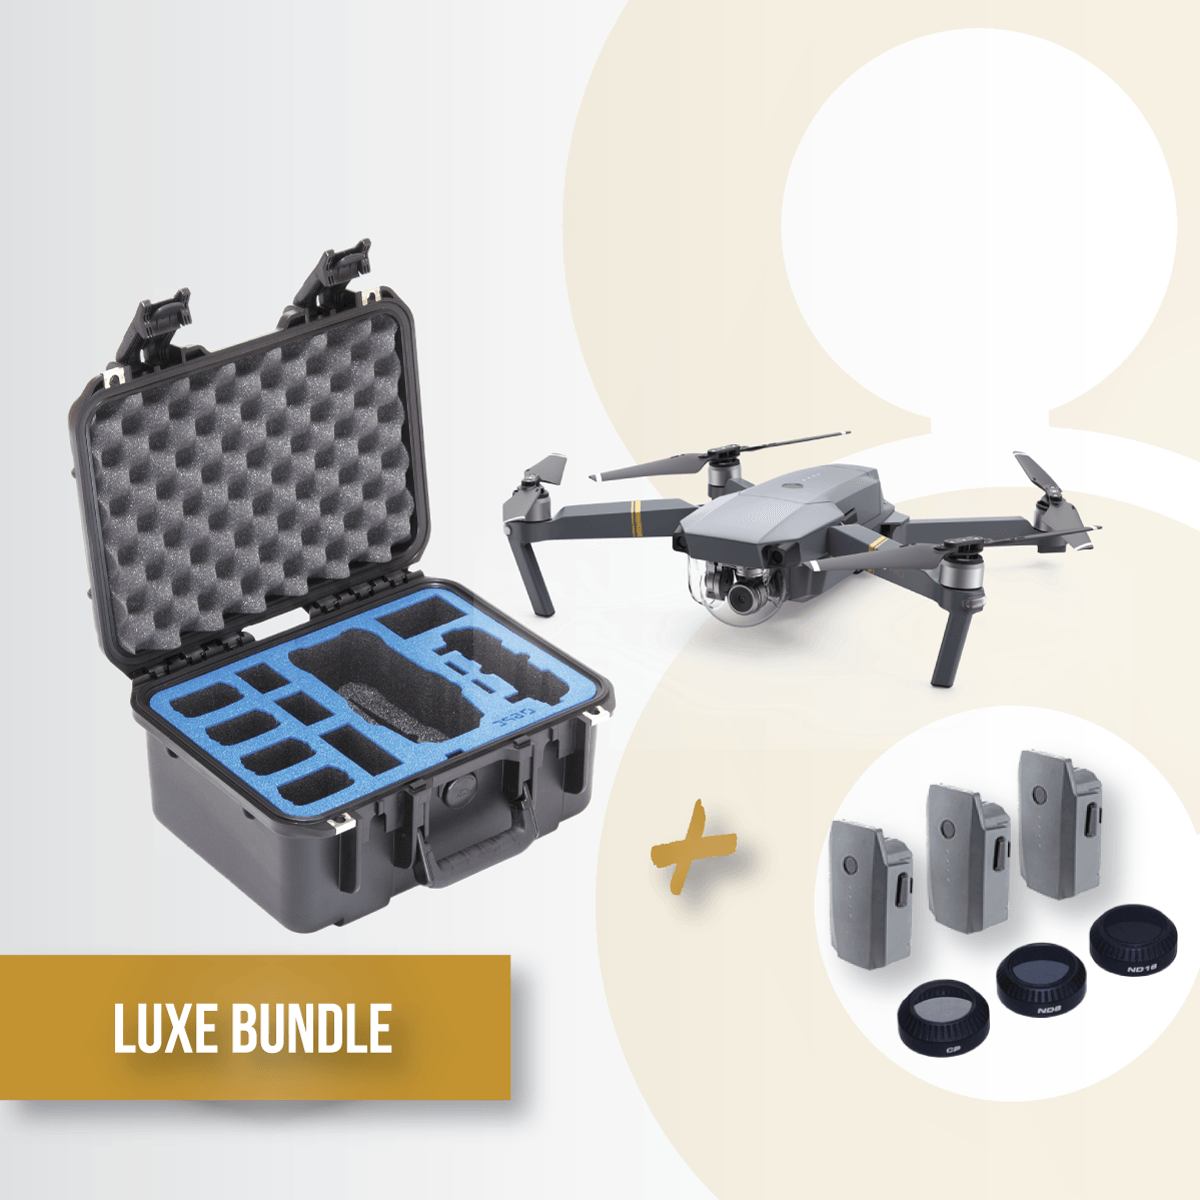 Bundle-gold-Mavic-gpc-case-hard-battery-reote-dji-lens-kit-polarpro-filters